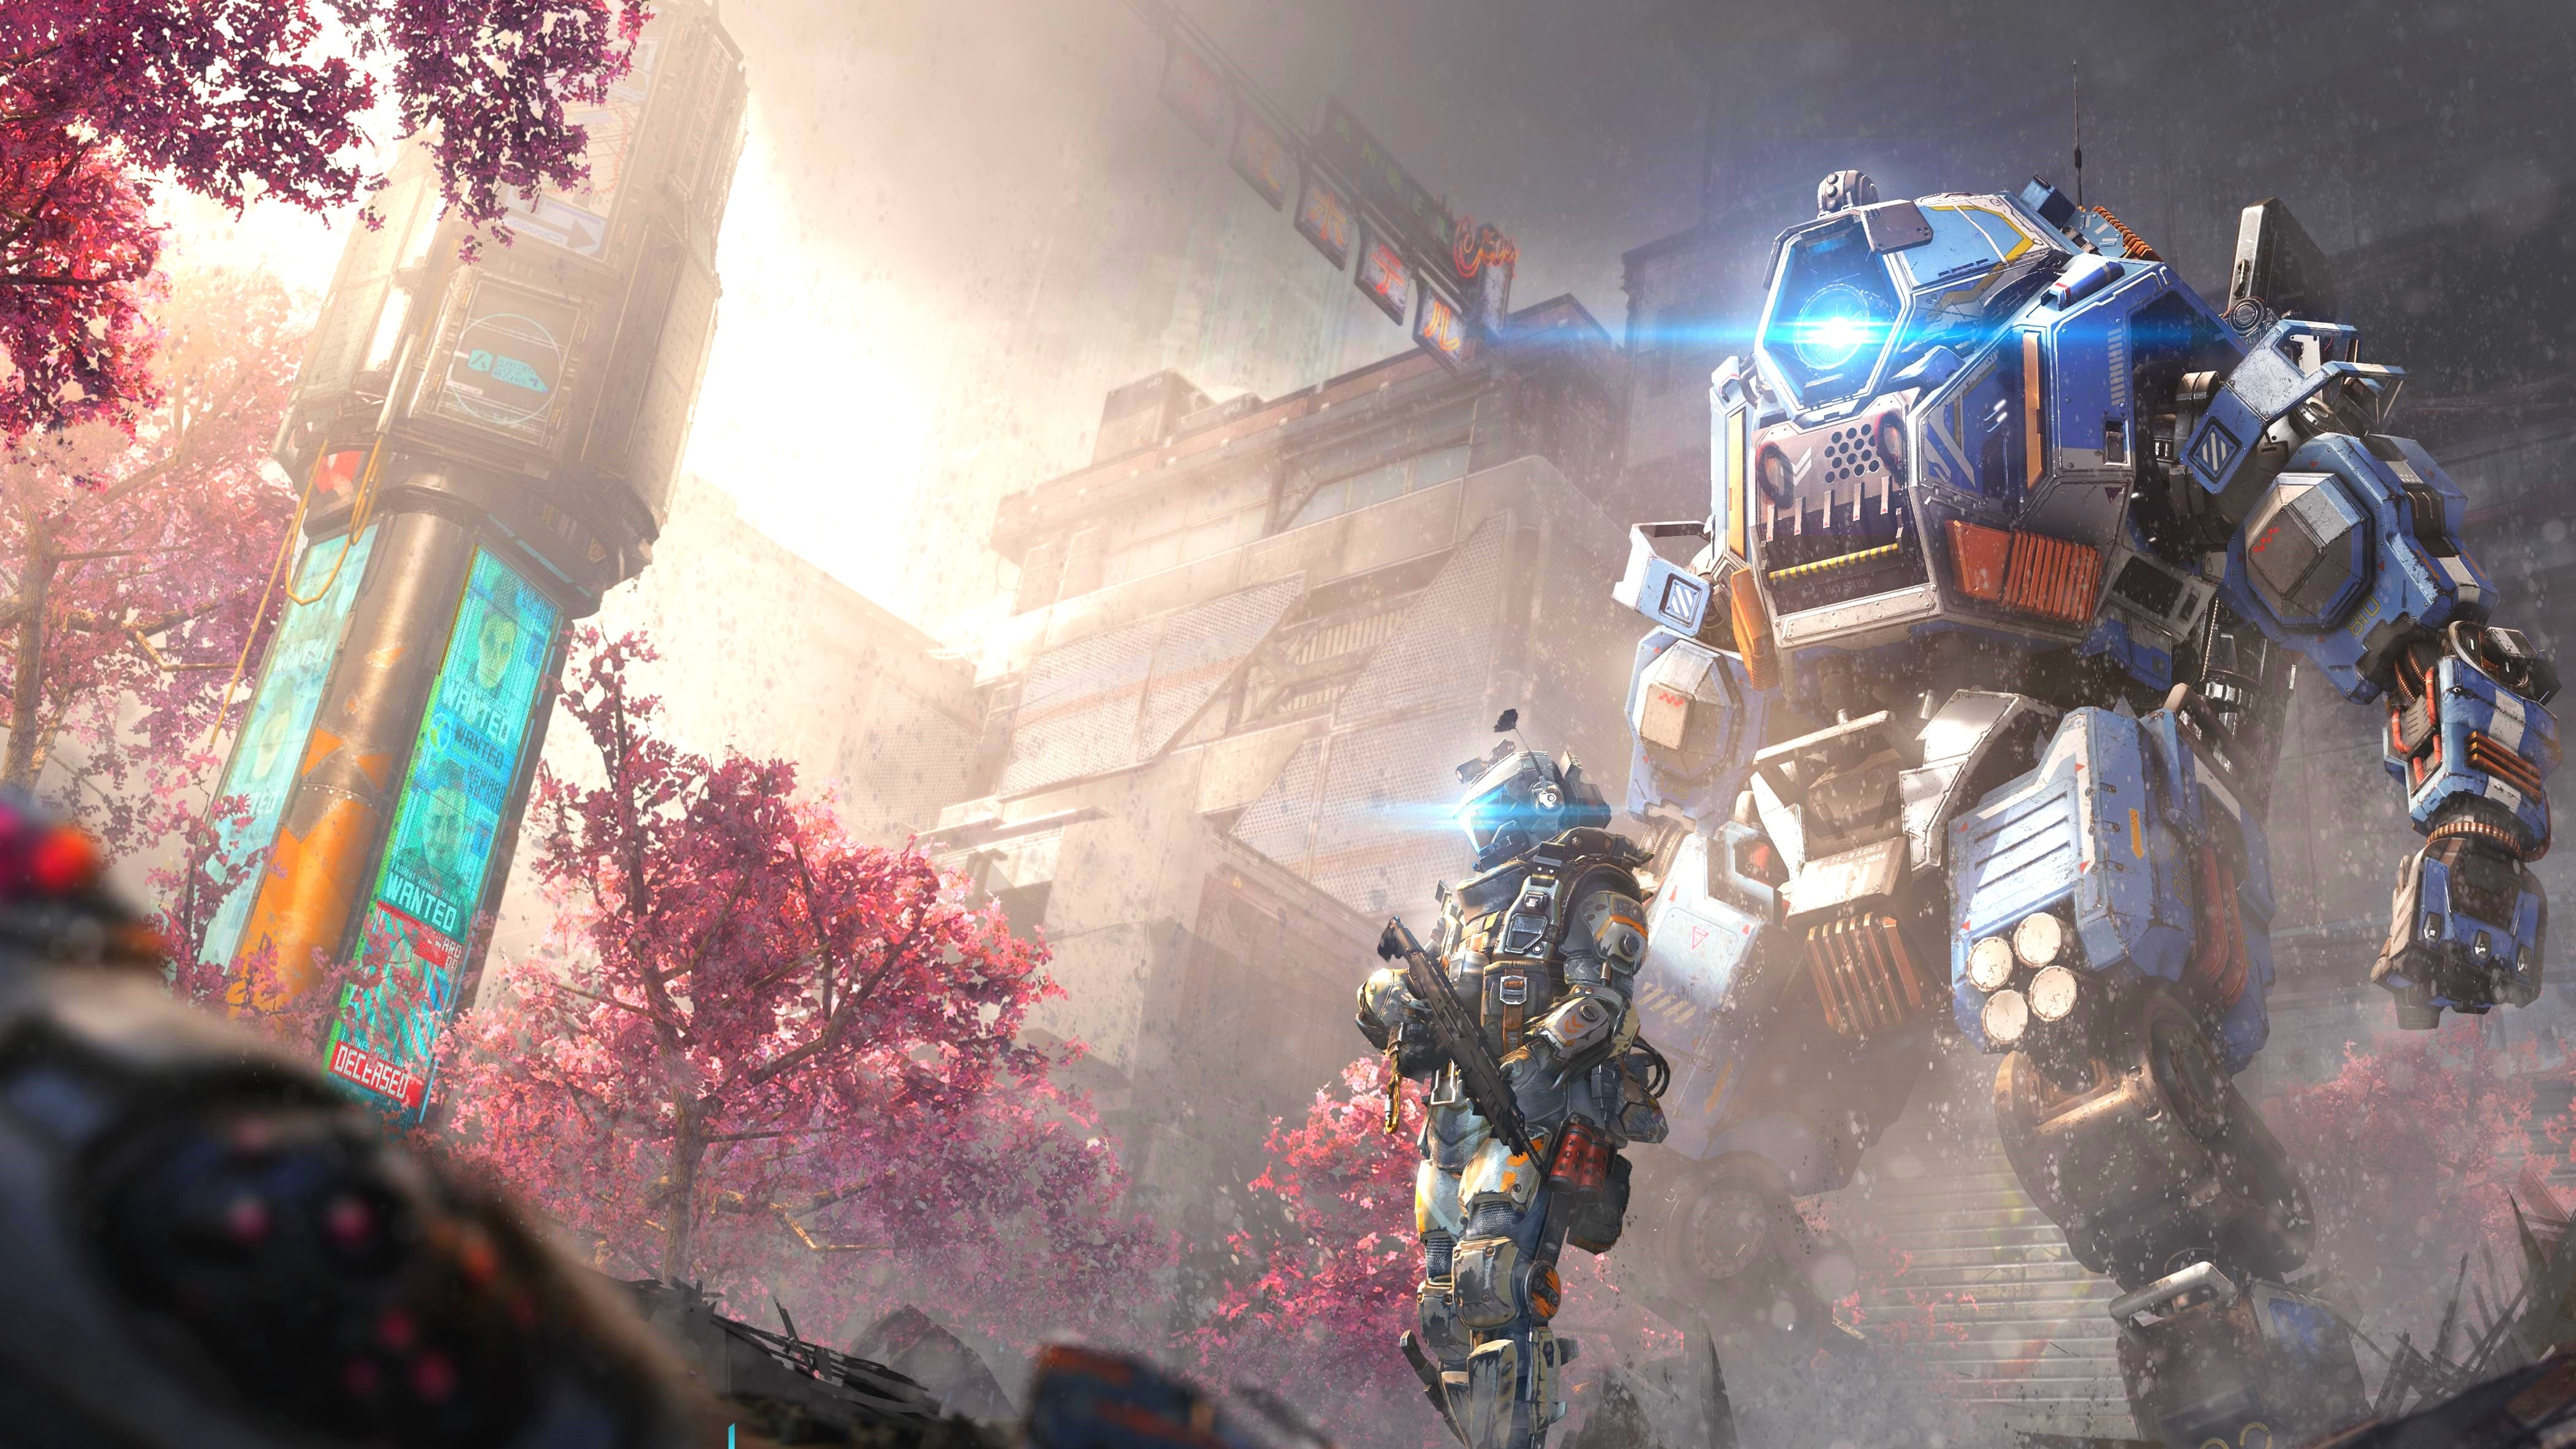 3d Wallpaper 800x1280 Titanfall 2 Angel City Hd Games 4k Wallpapers Images